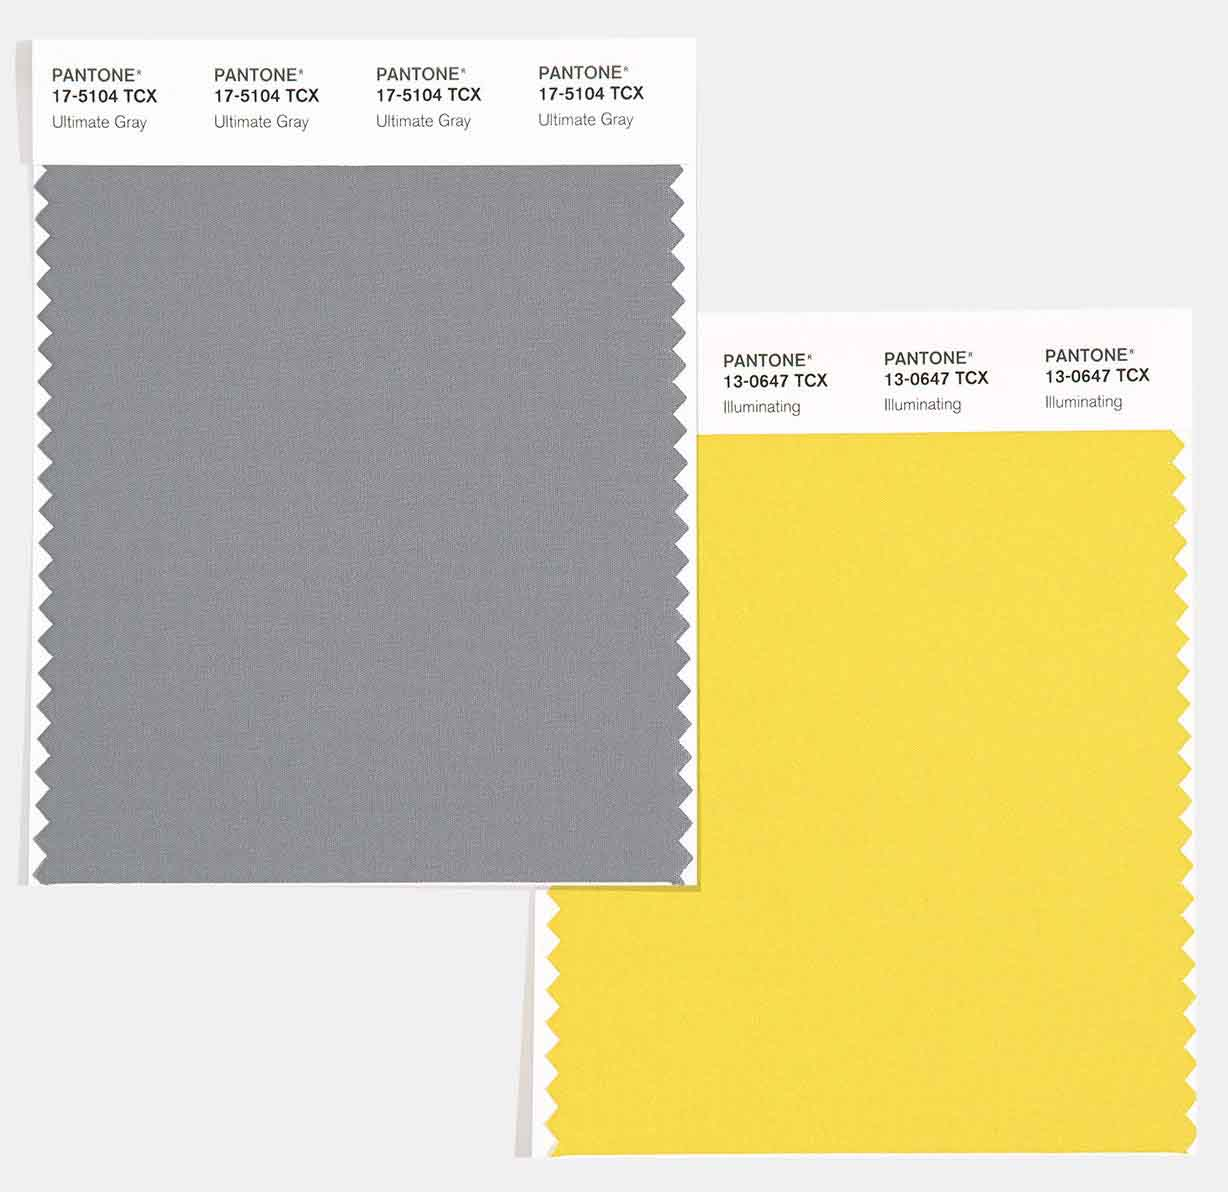 swcd-tcx-color-of-the-year-2021-ultimate-gray-illuminating_1